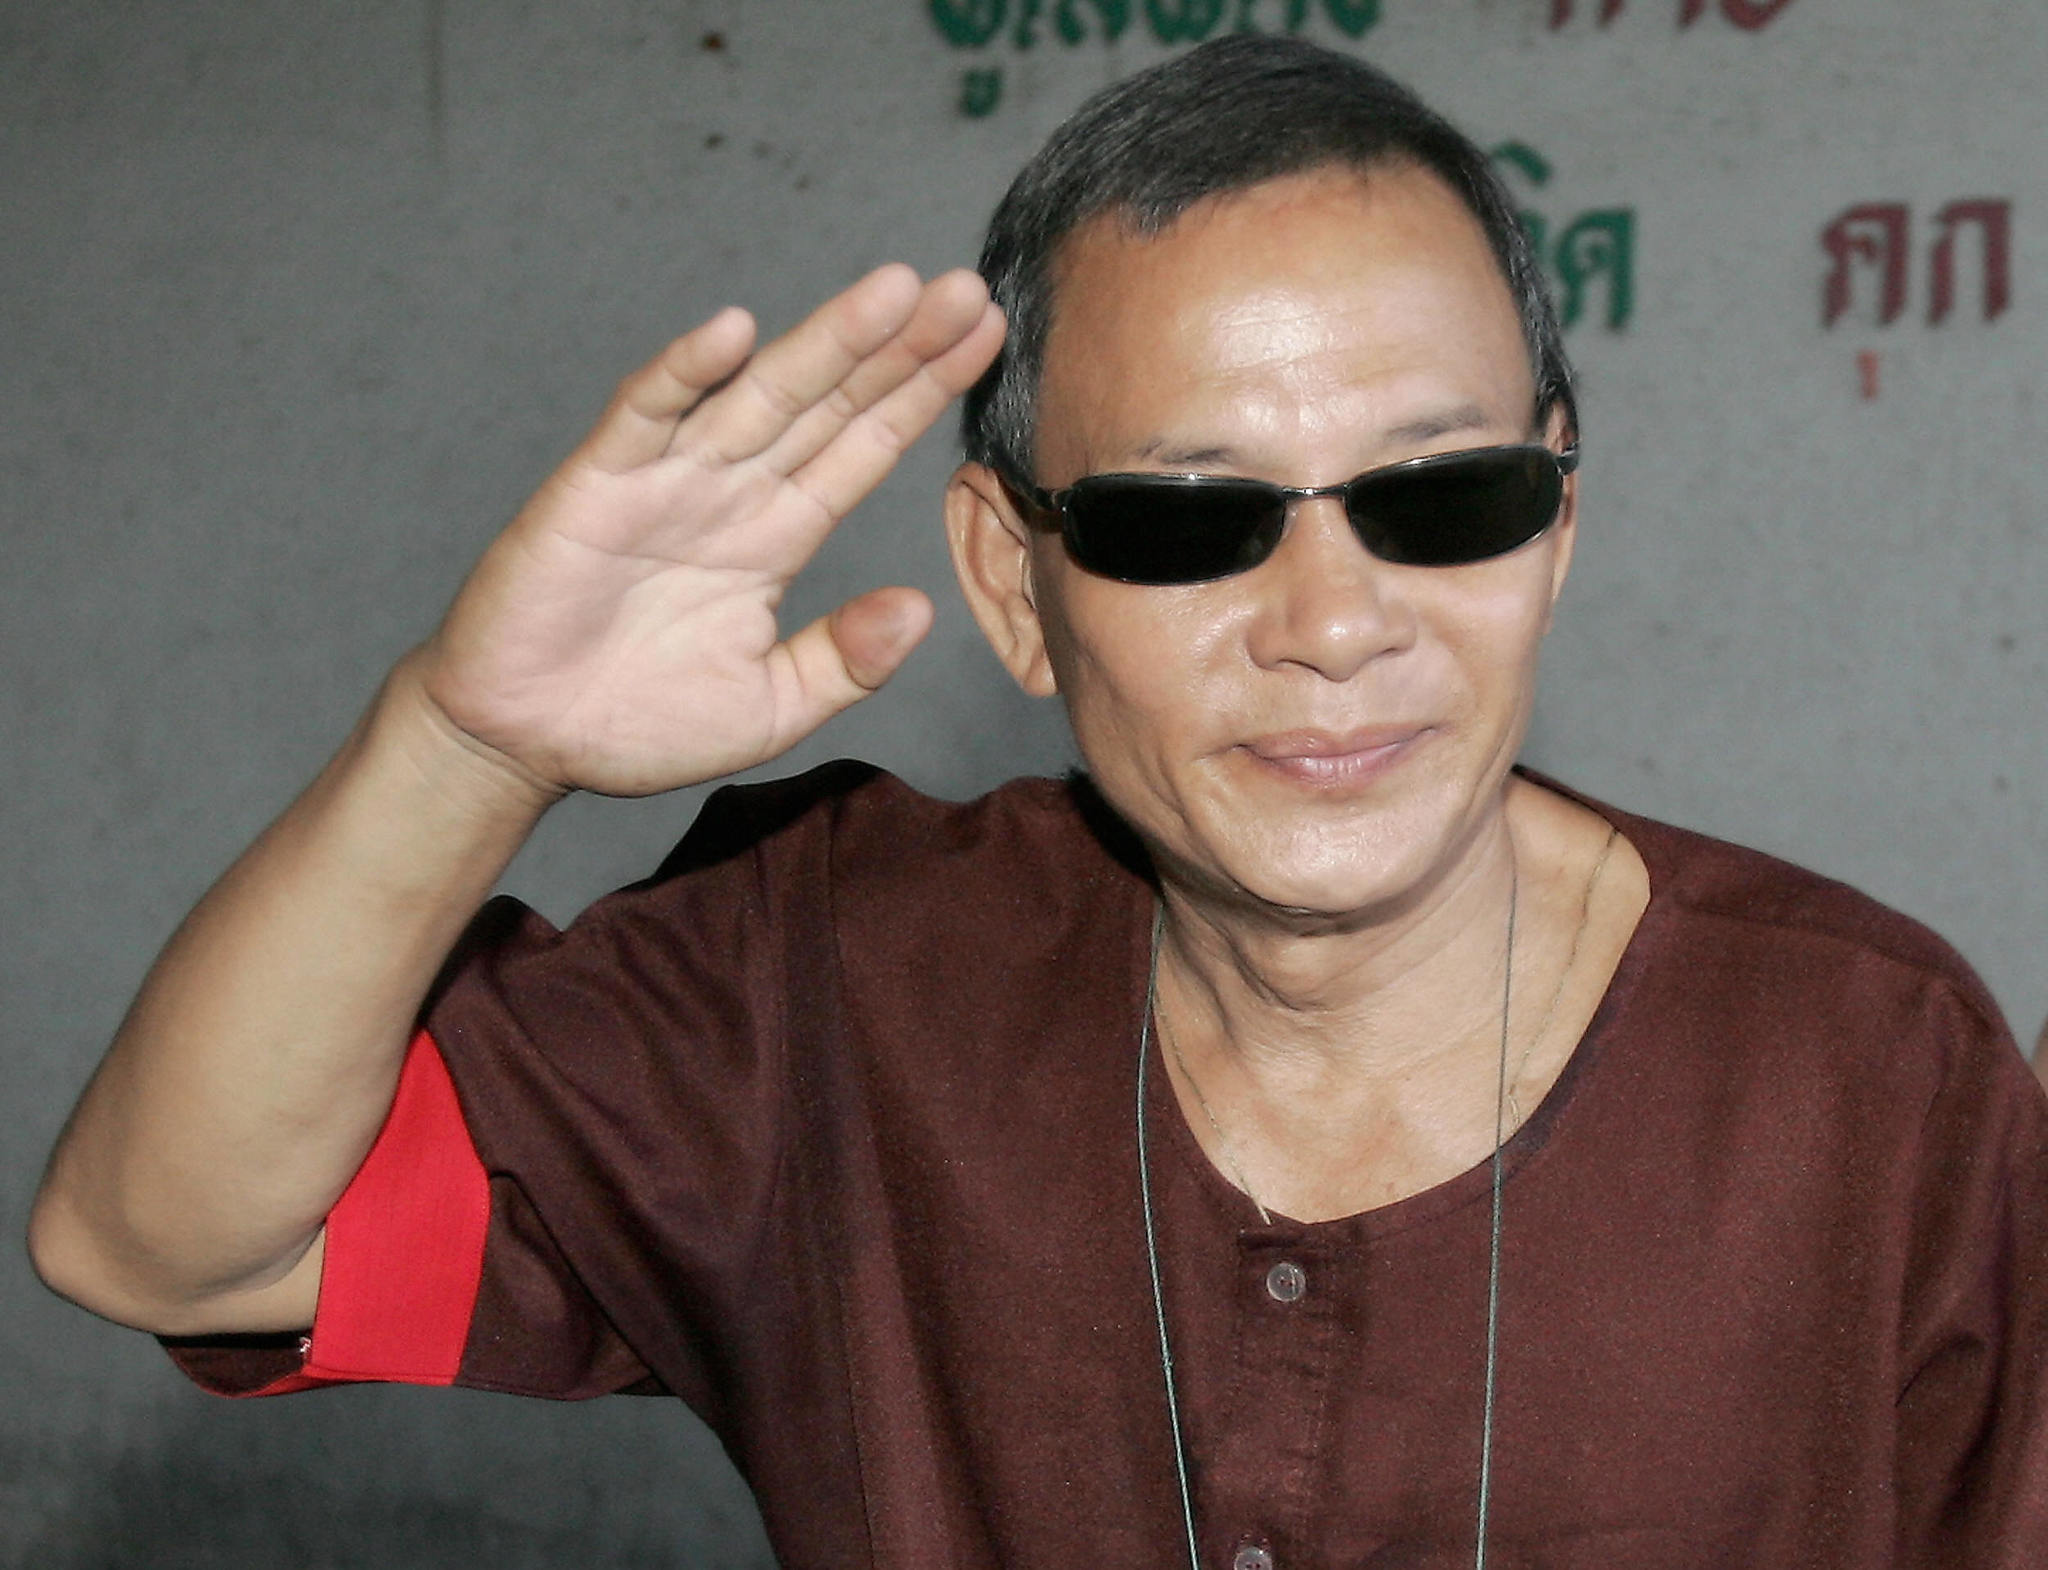 Ly Tong, the 'Vietnamese James Bond' and anti-communist folk hero, nears death